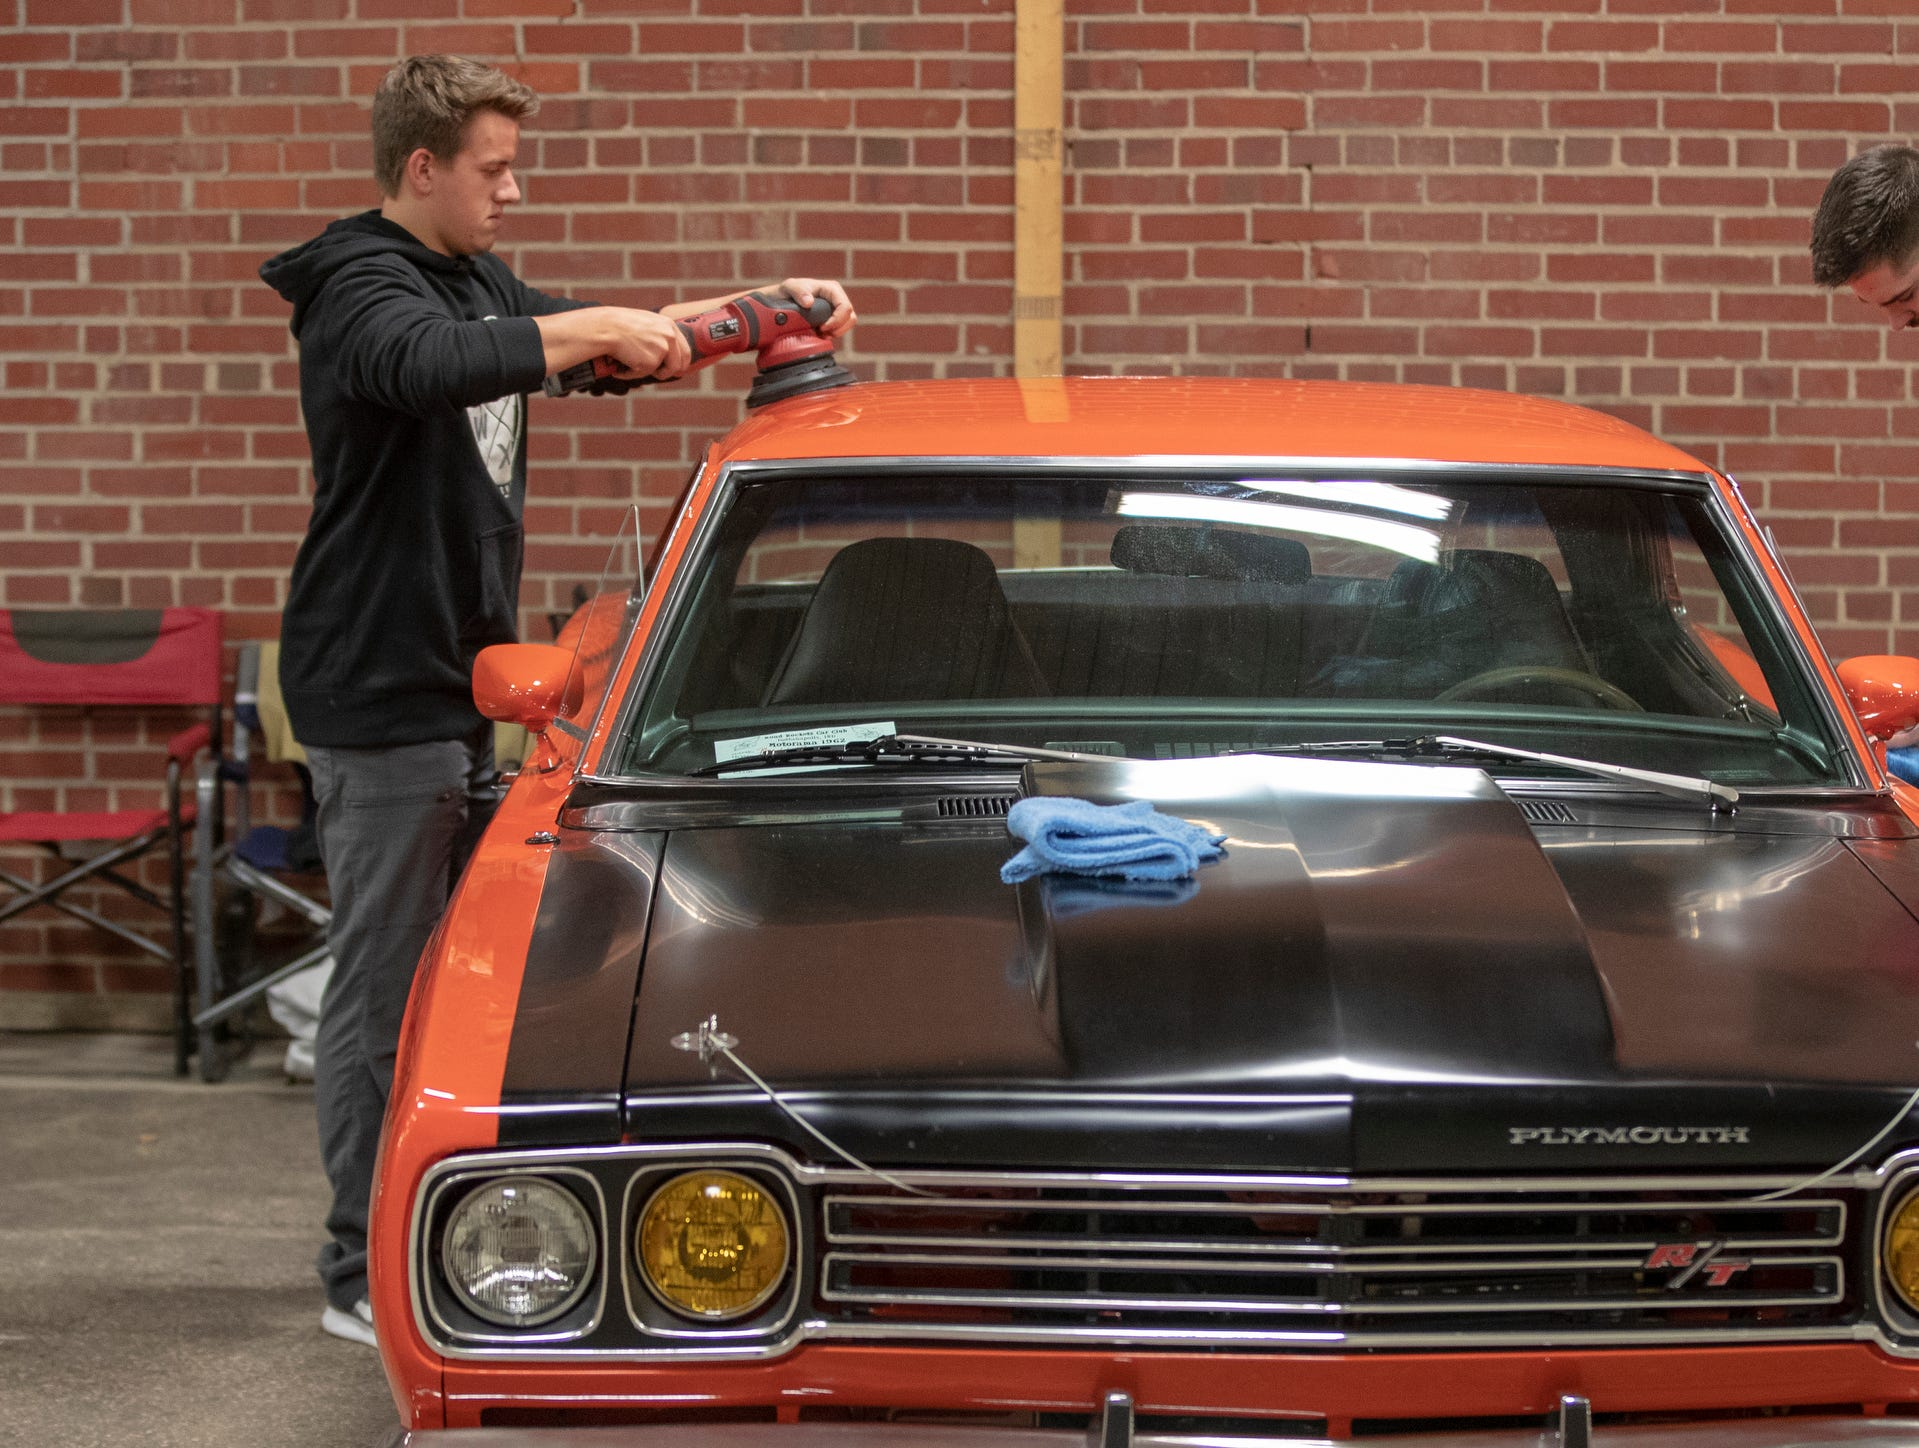 Austin Osborn (left), Kokomo, and Jordan Miller, Logansport, work on polishing up a 1969 Plymouth Satellite, at World of Wheels at the Indiana State Fairgrounds, Indianapolis, Friday, Feb. 8, 2019. The event runs through the weekend and features four big rooms of stock and heavily customized cars.